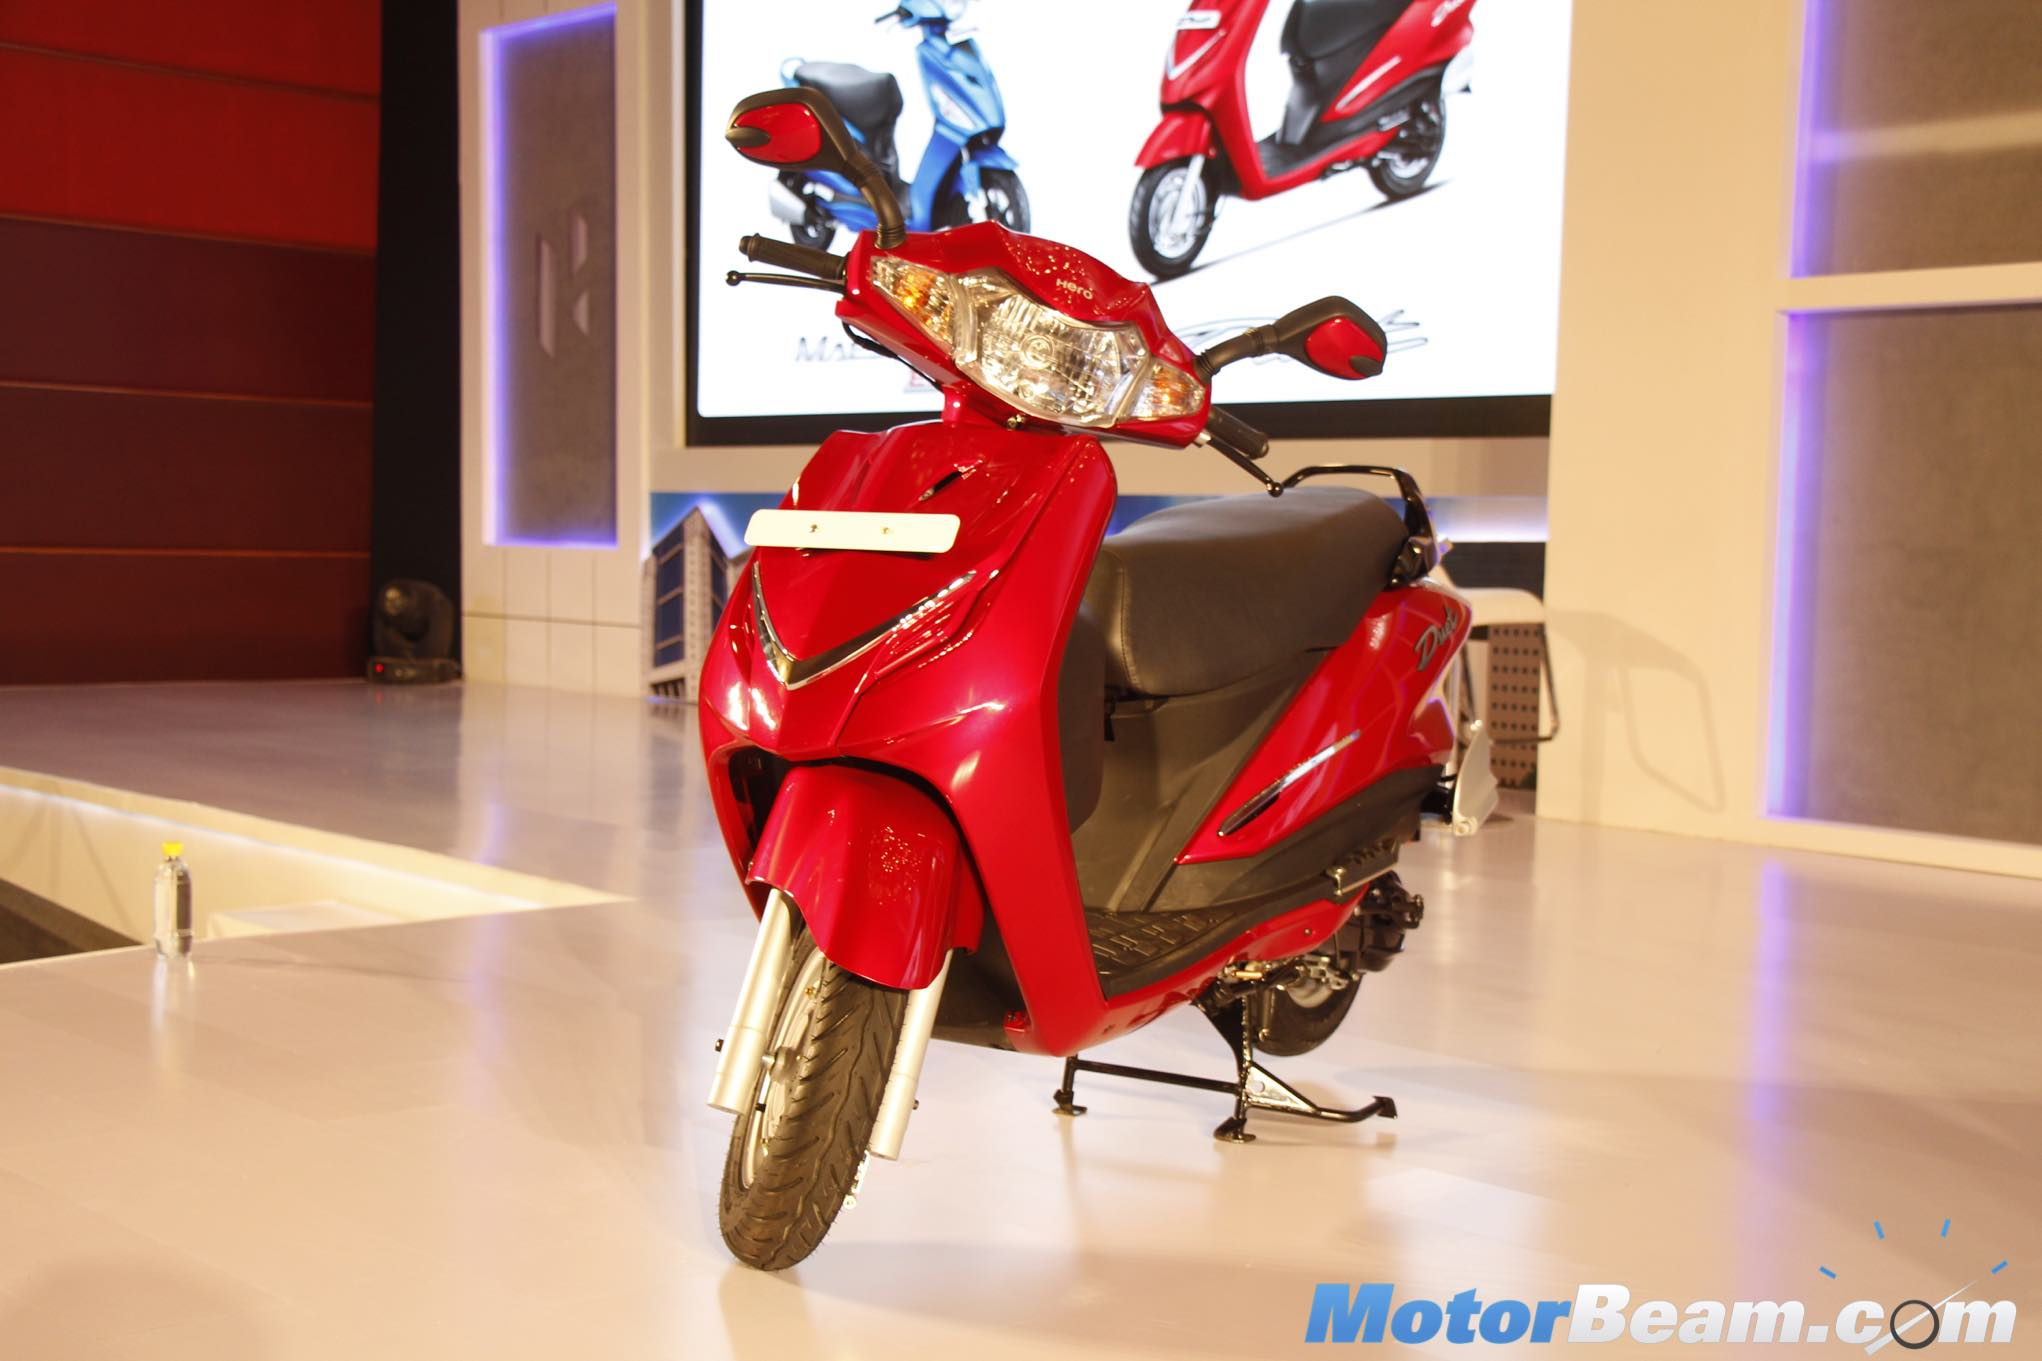 tvs wego tvs wego price reviews photos tattoo design bild. Black Bedroom Furniture Sets. Home Design Ideas